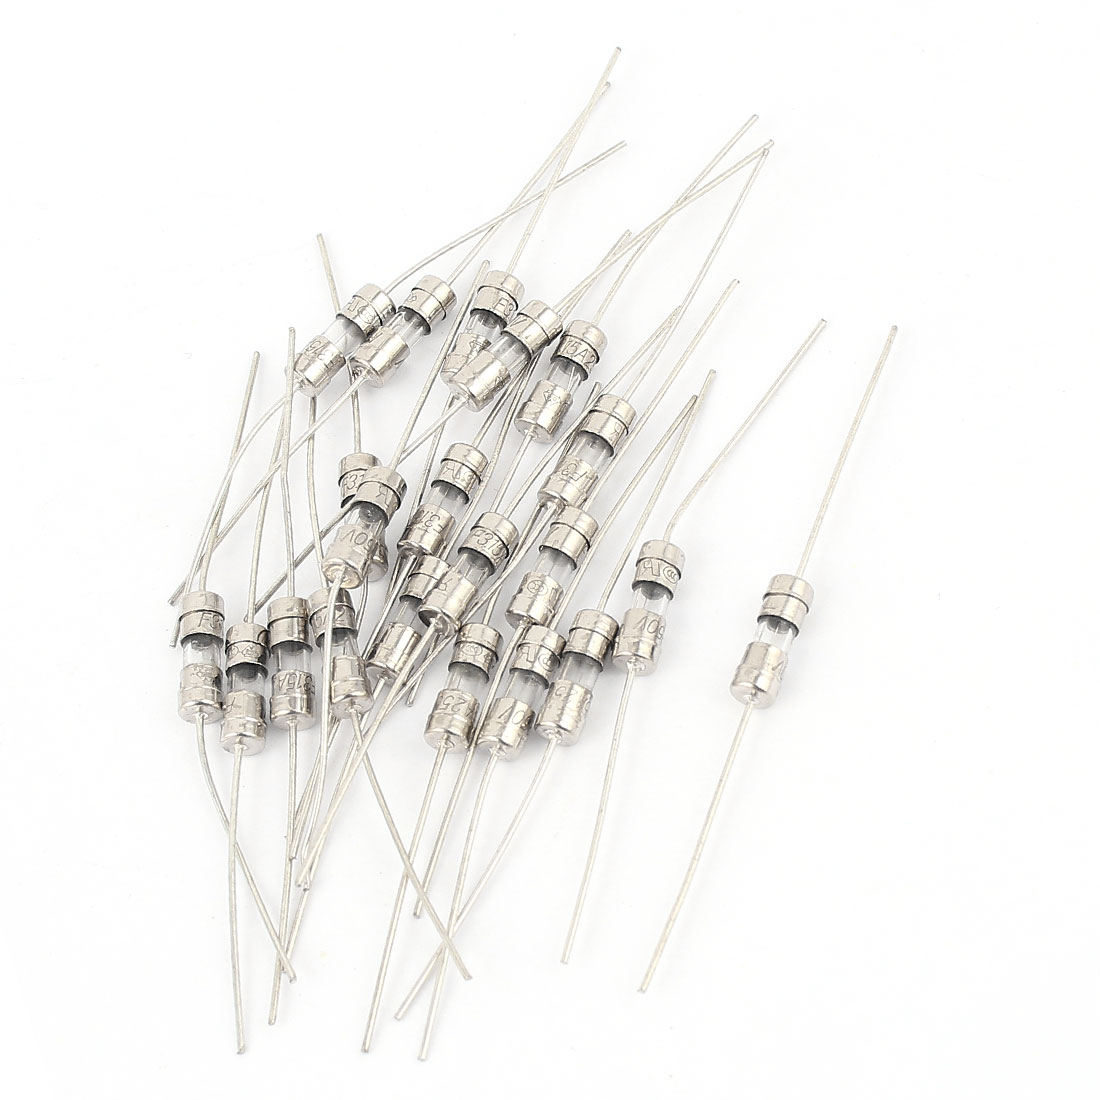 20pcs AC 250V 4A 4x11mm Fast-blow Acting Axial Lead Glass Fuse